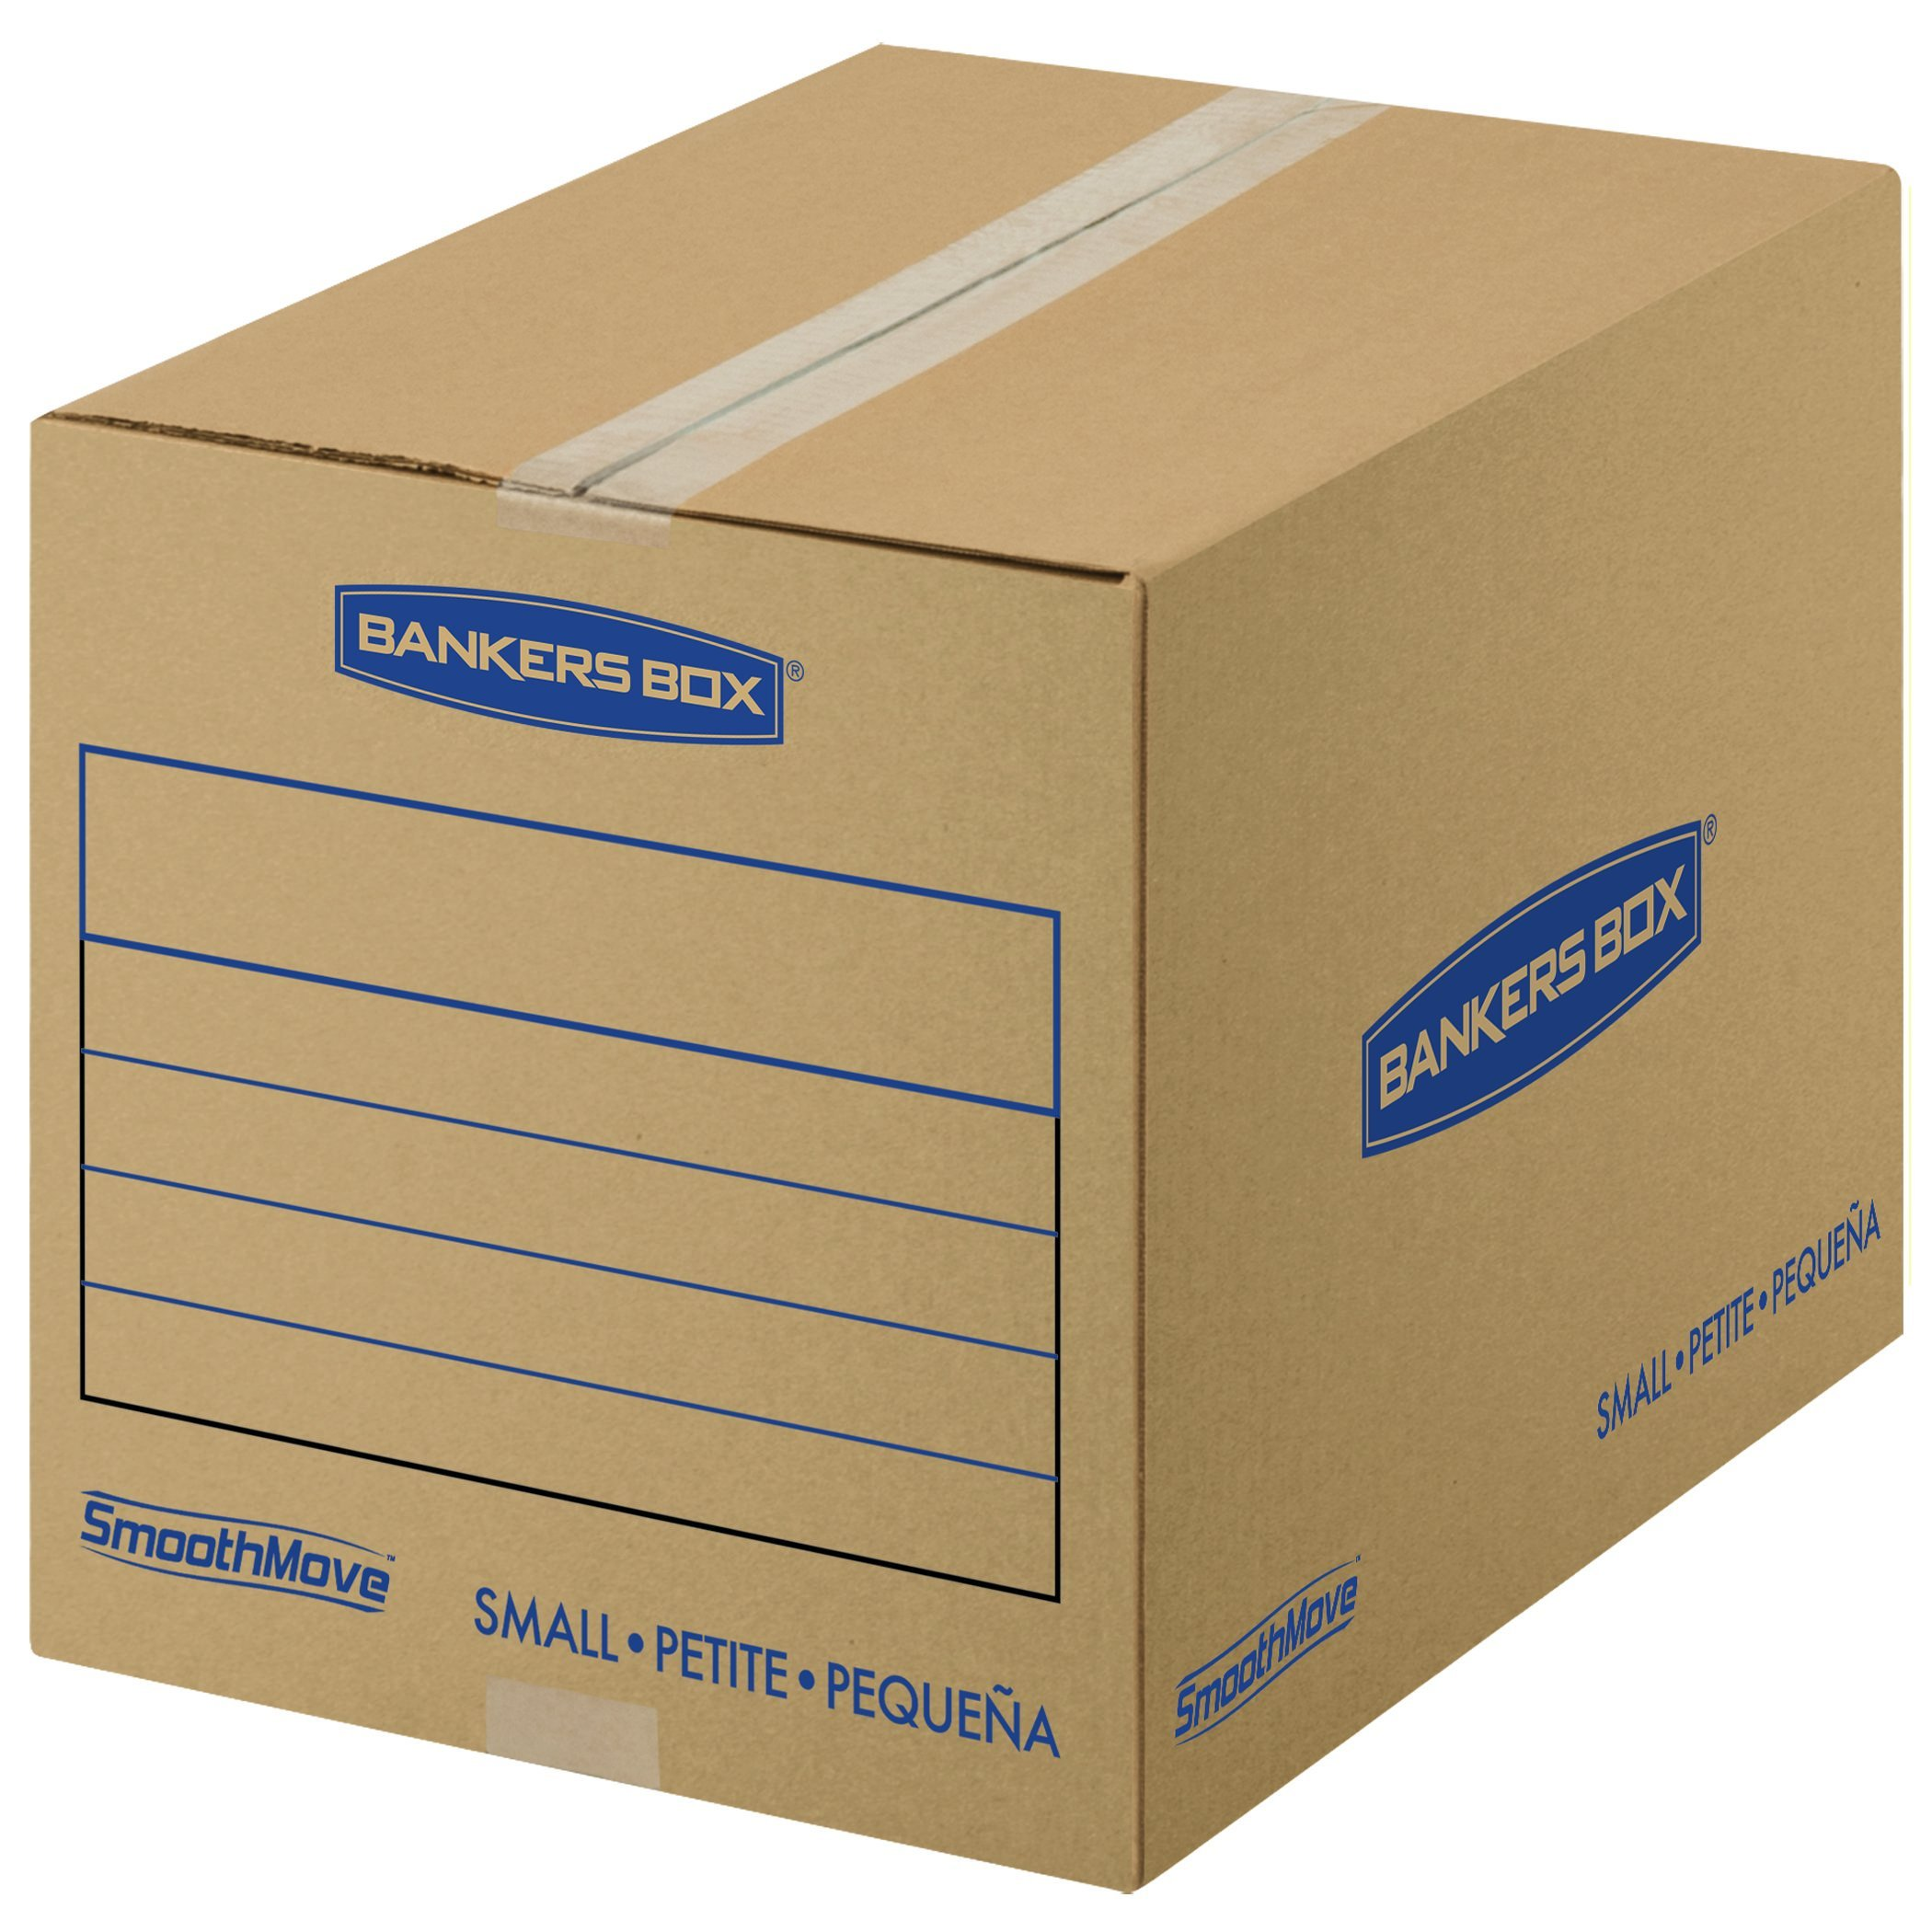 Bankers Box SmoothMove Basic Moving Boxes, Small, 16 x 12 x 12 Inches, 15 Pack (7713802) by Bankers Box